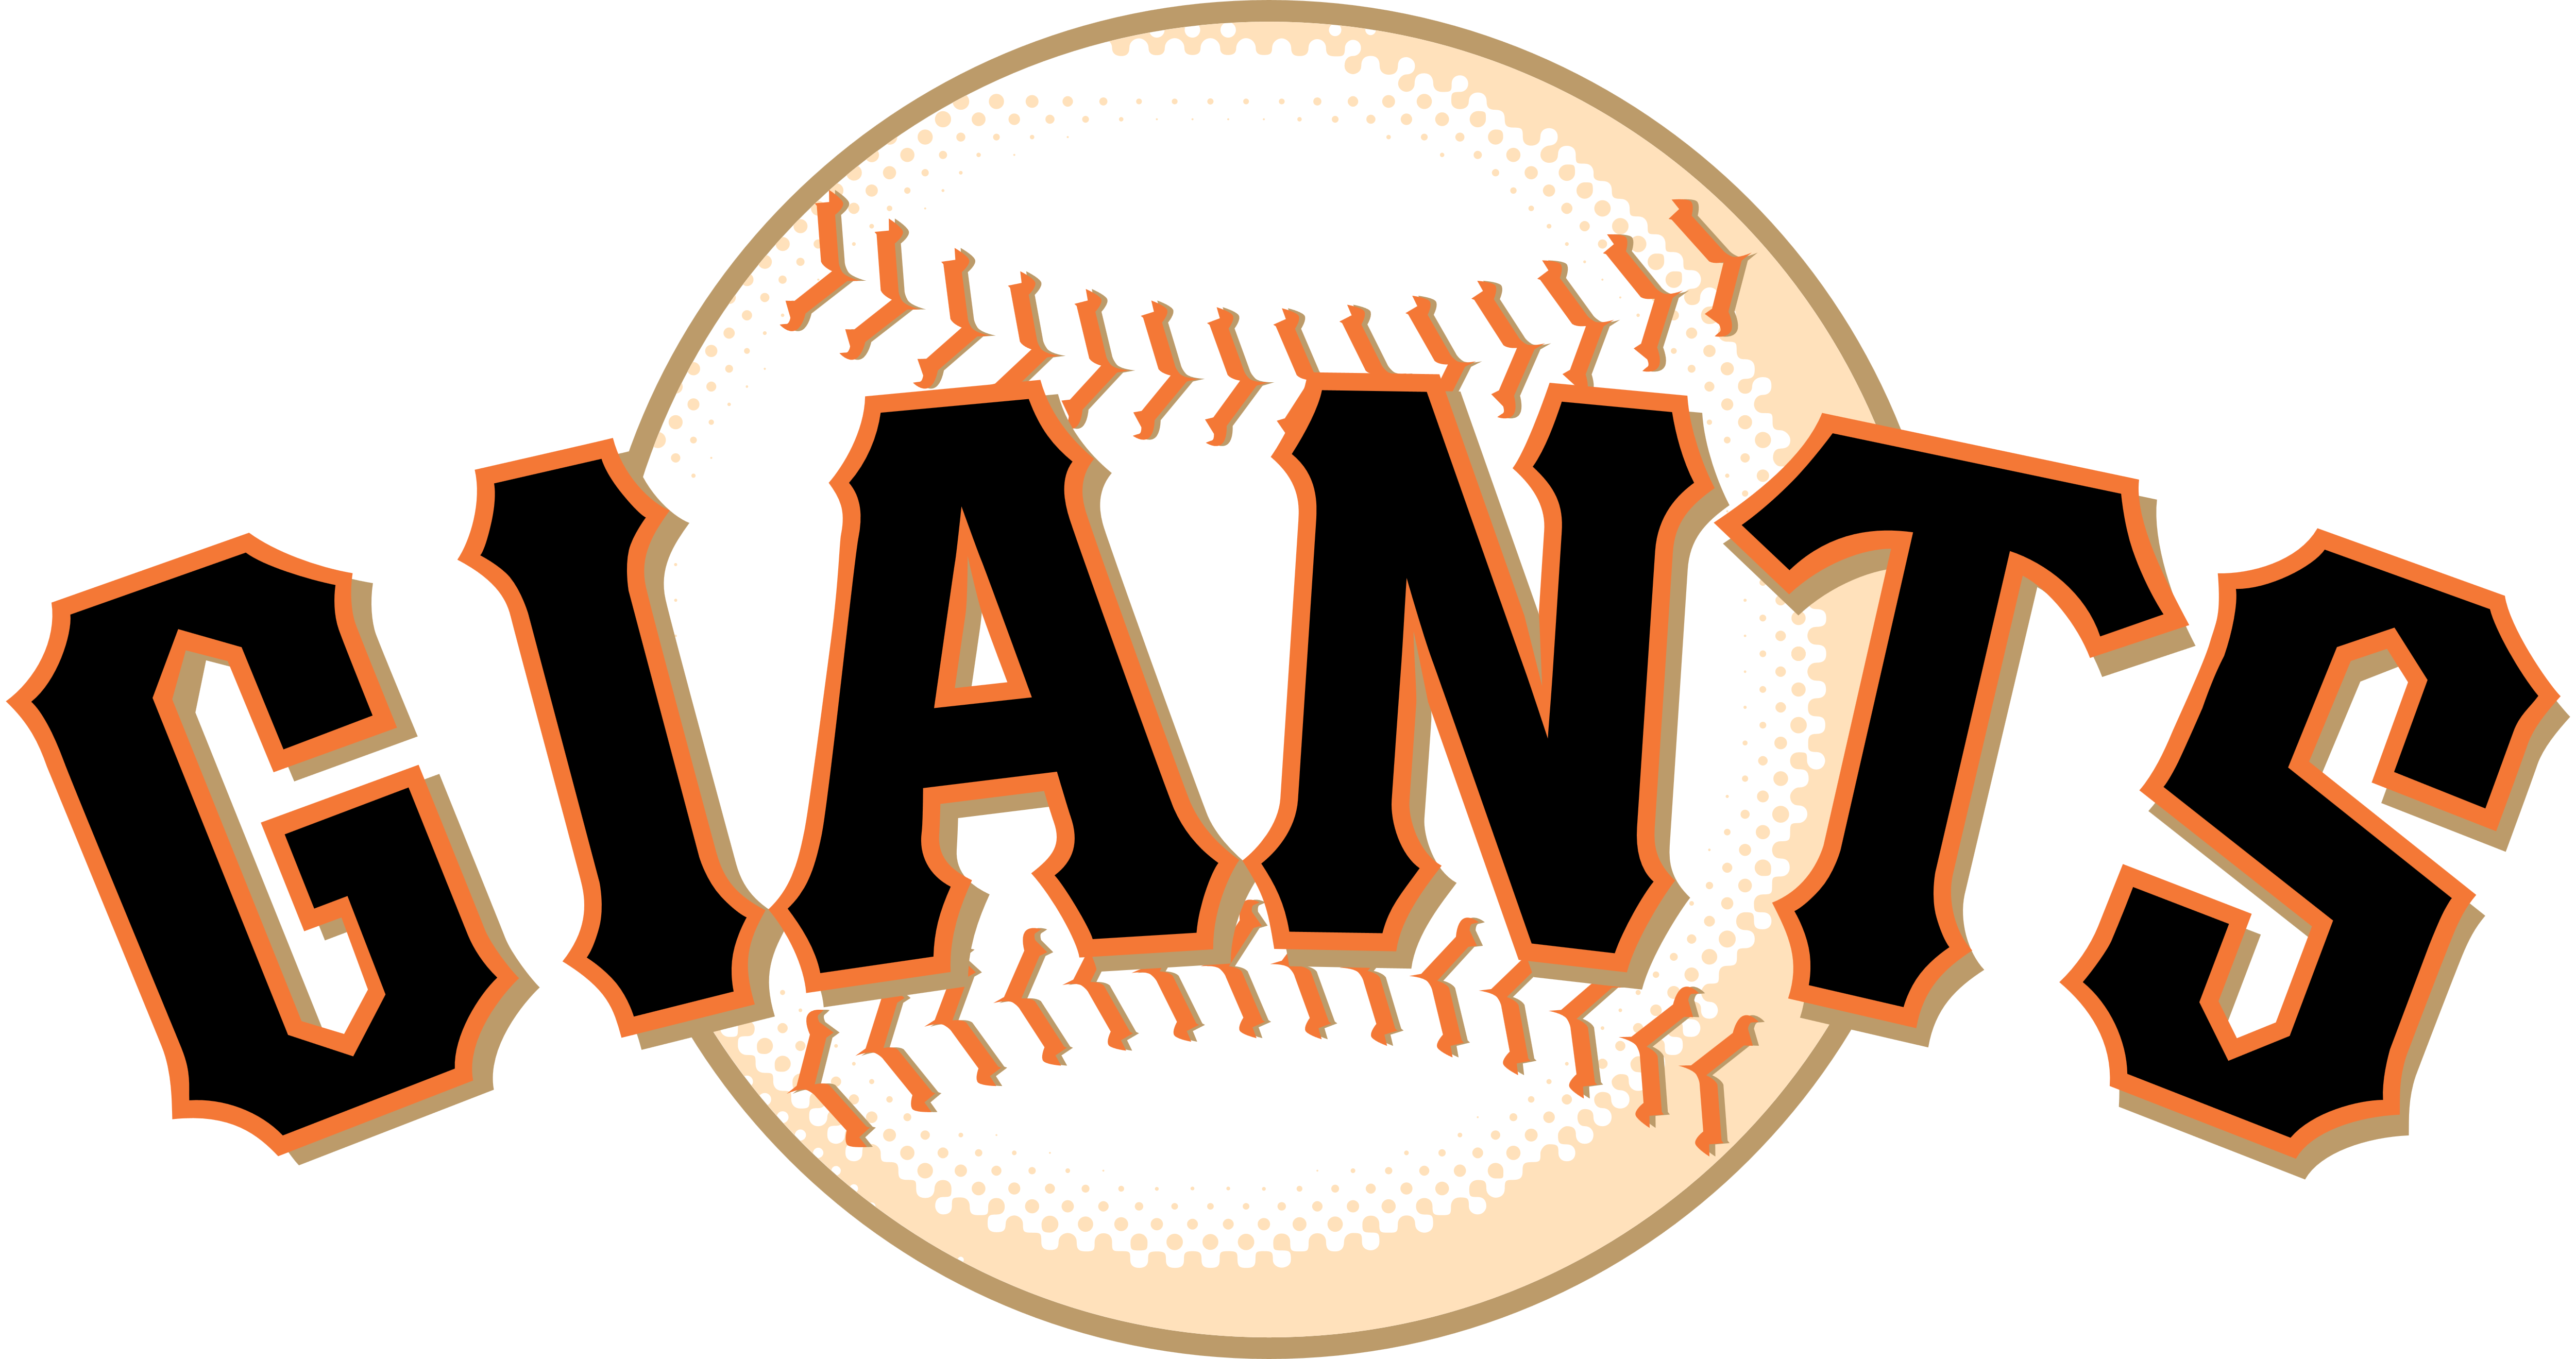 san francisco giants logos download rh logos download com sf giants logo jpg sf giants logo jpg